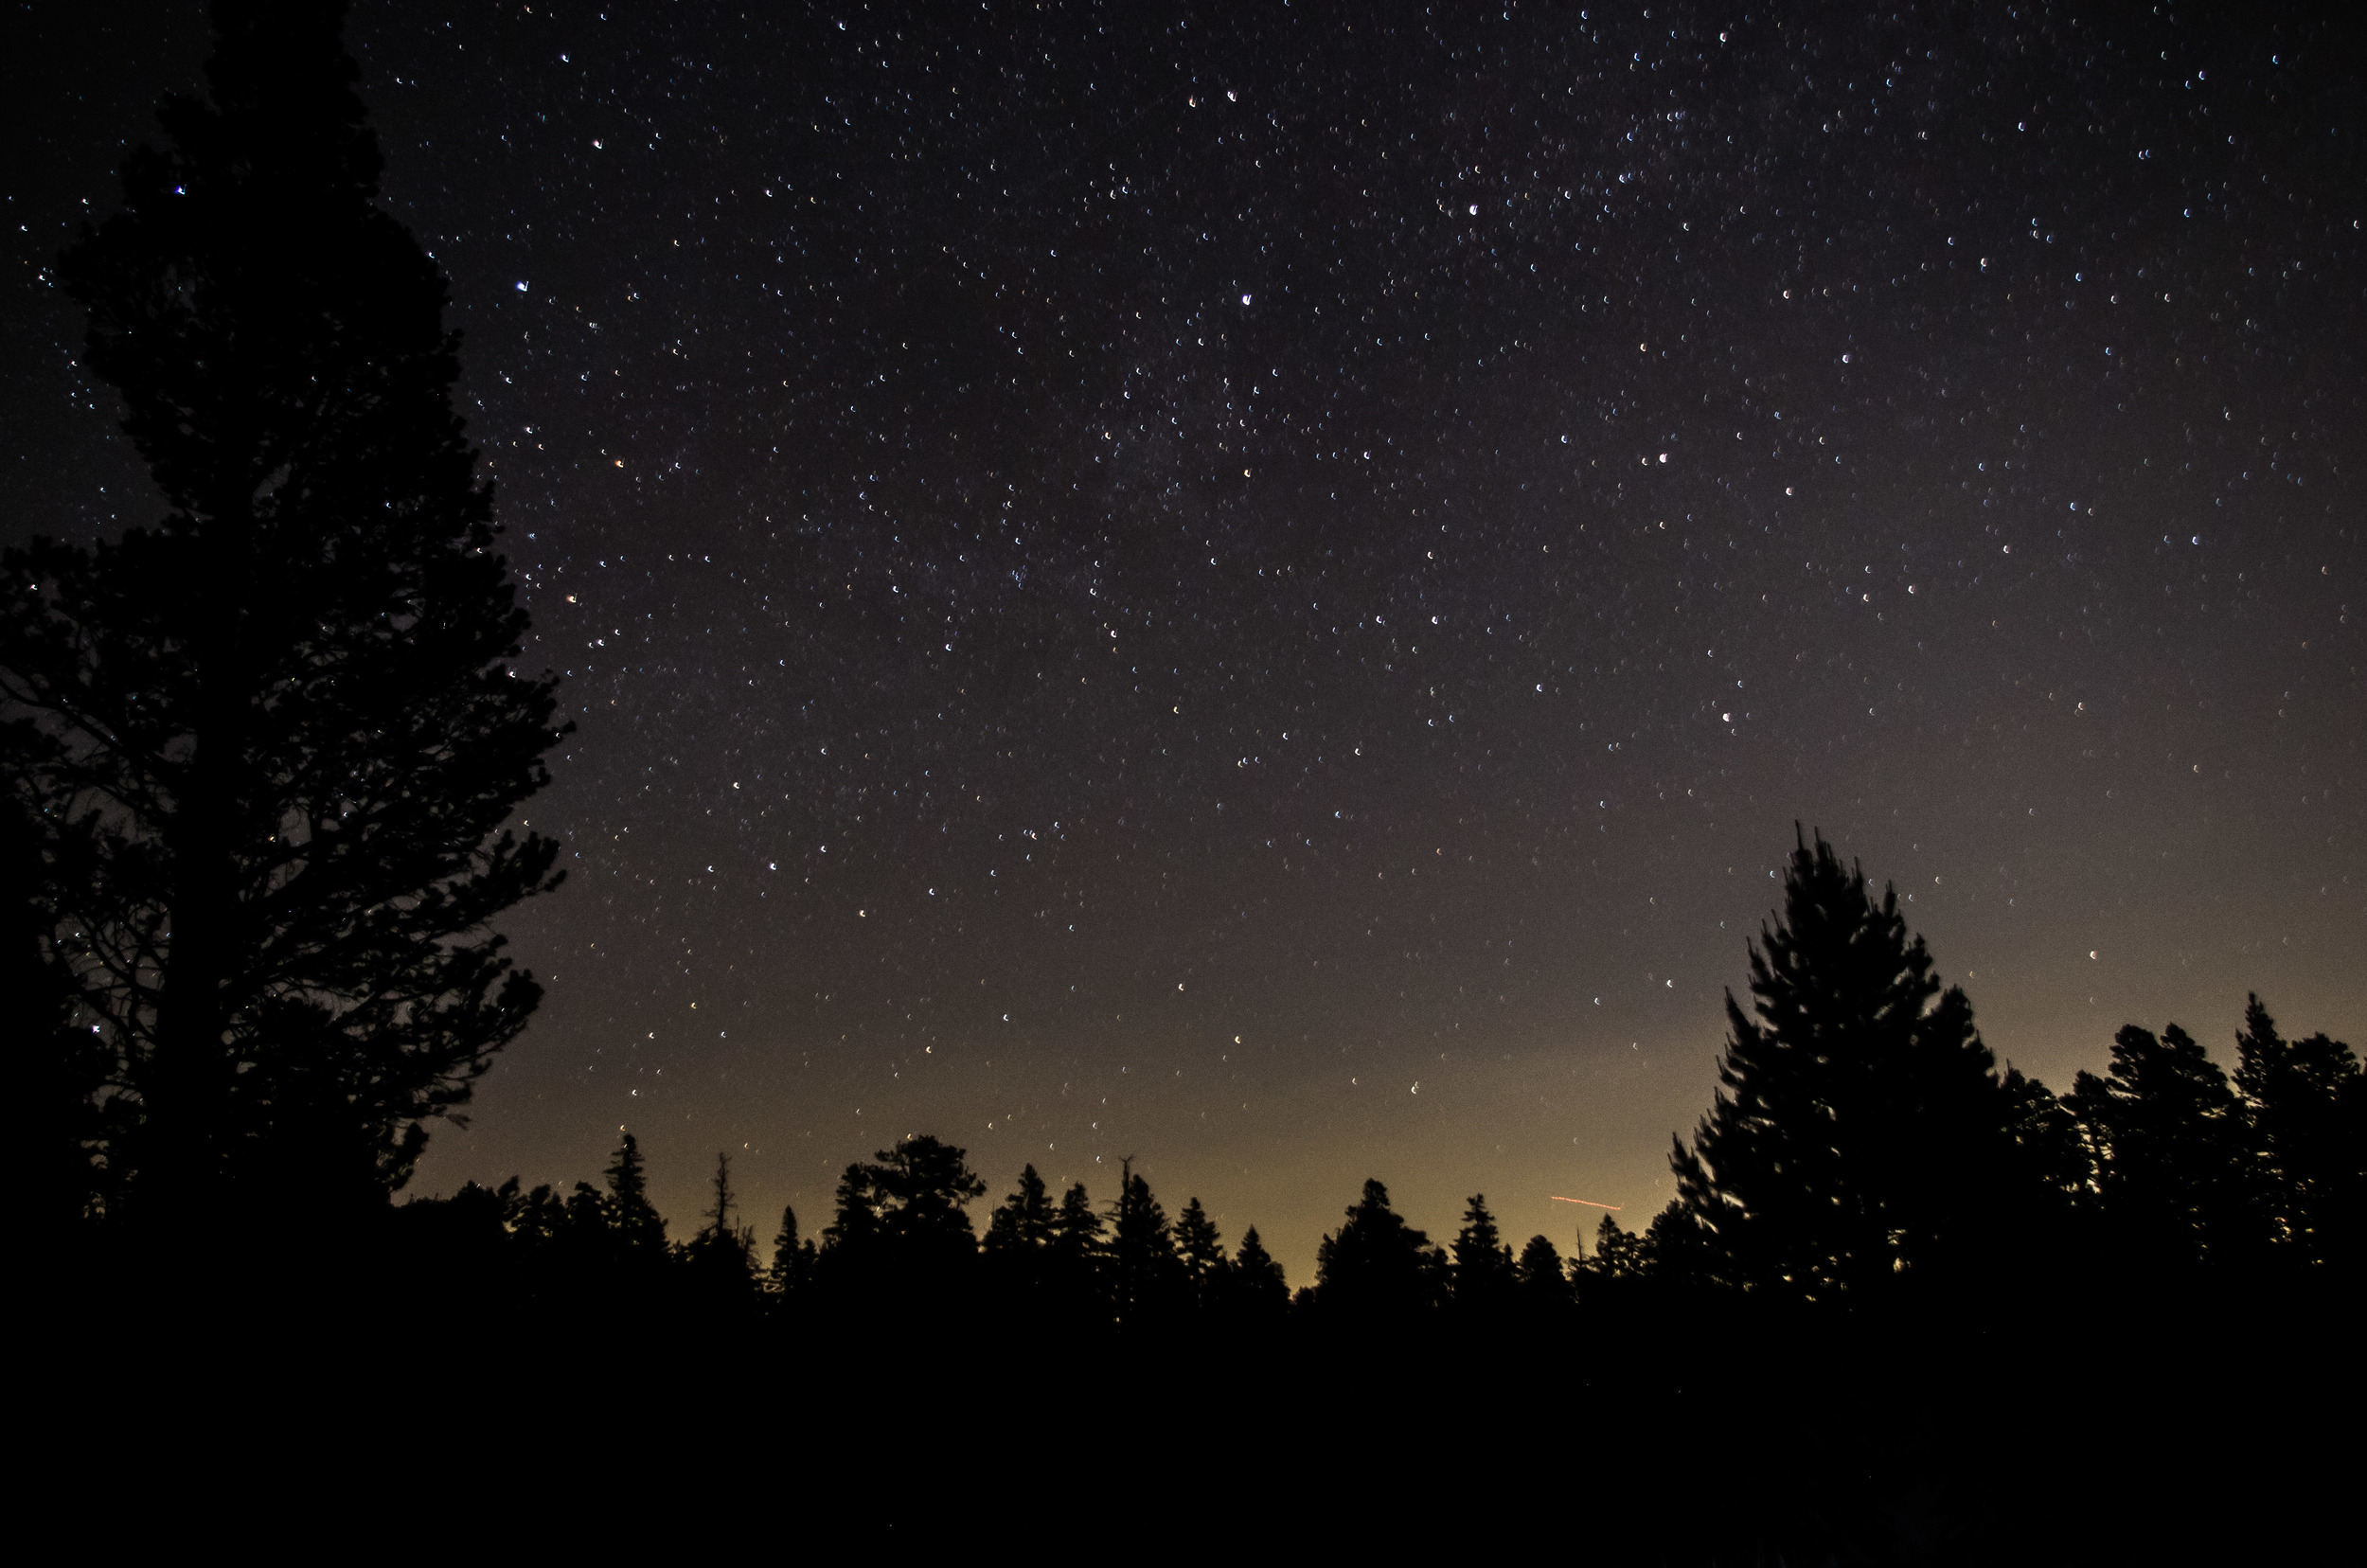 The night sky above the trees, above the mountain, above the desert below. Mount San Jacinto Peak State Park, California